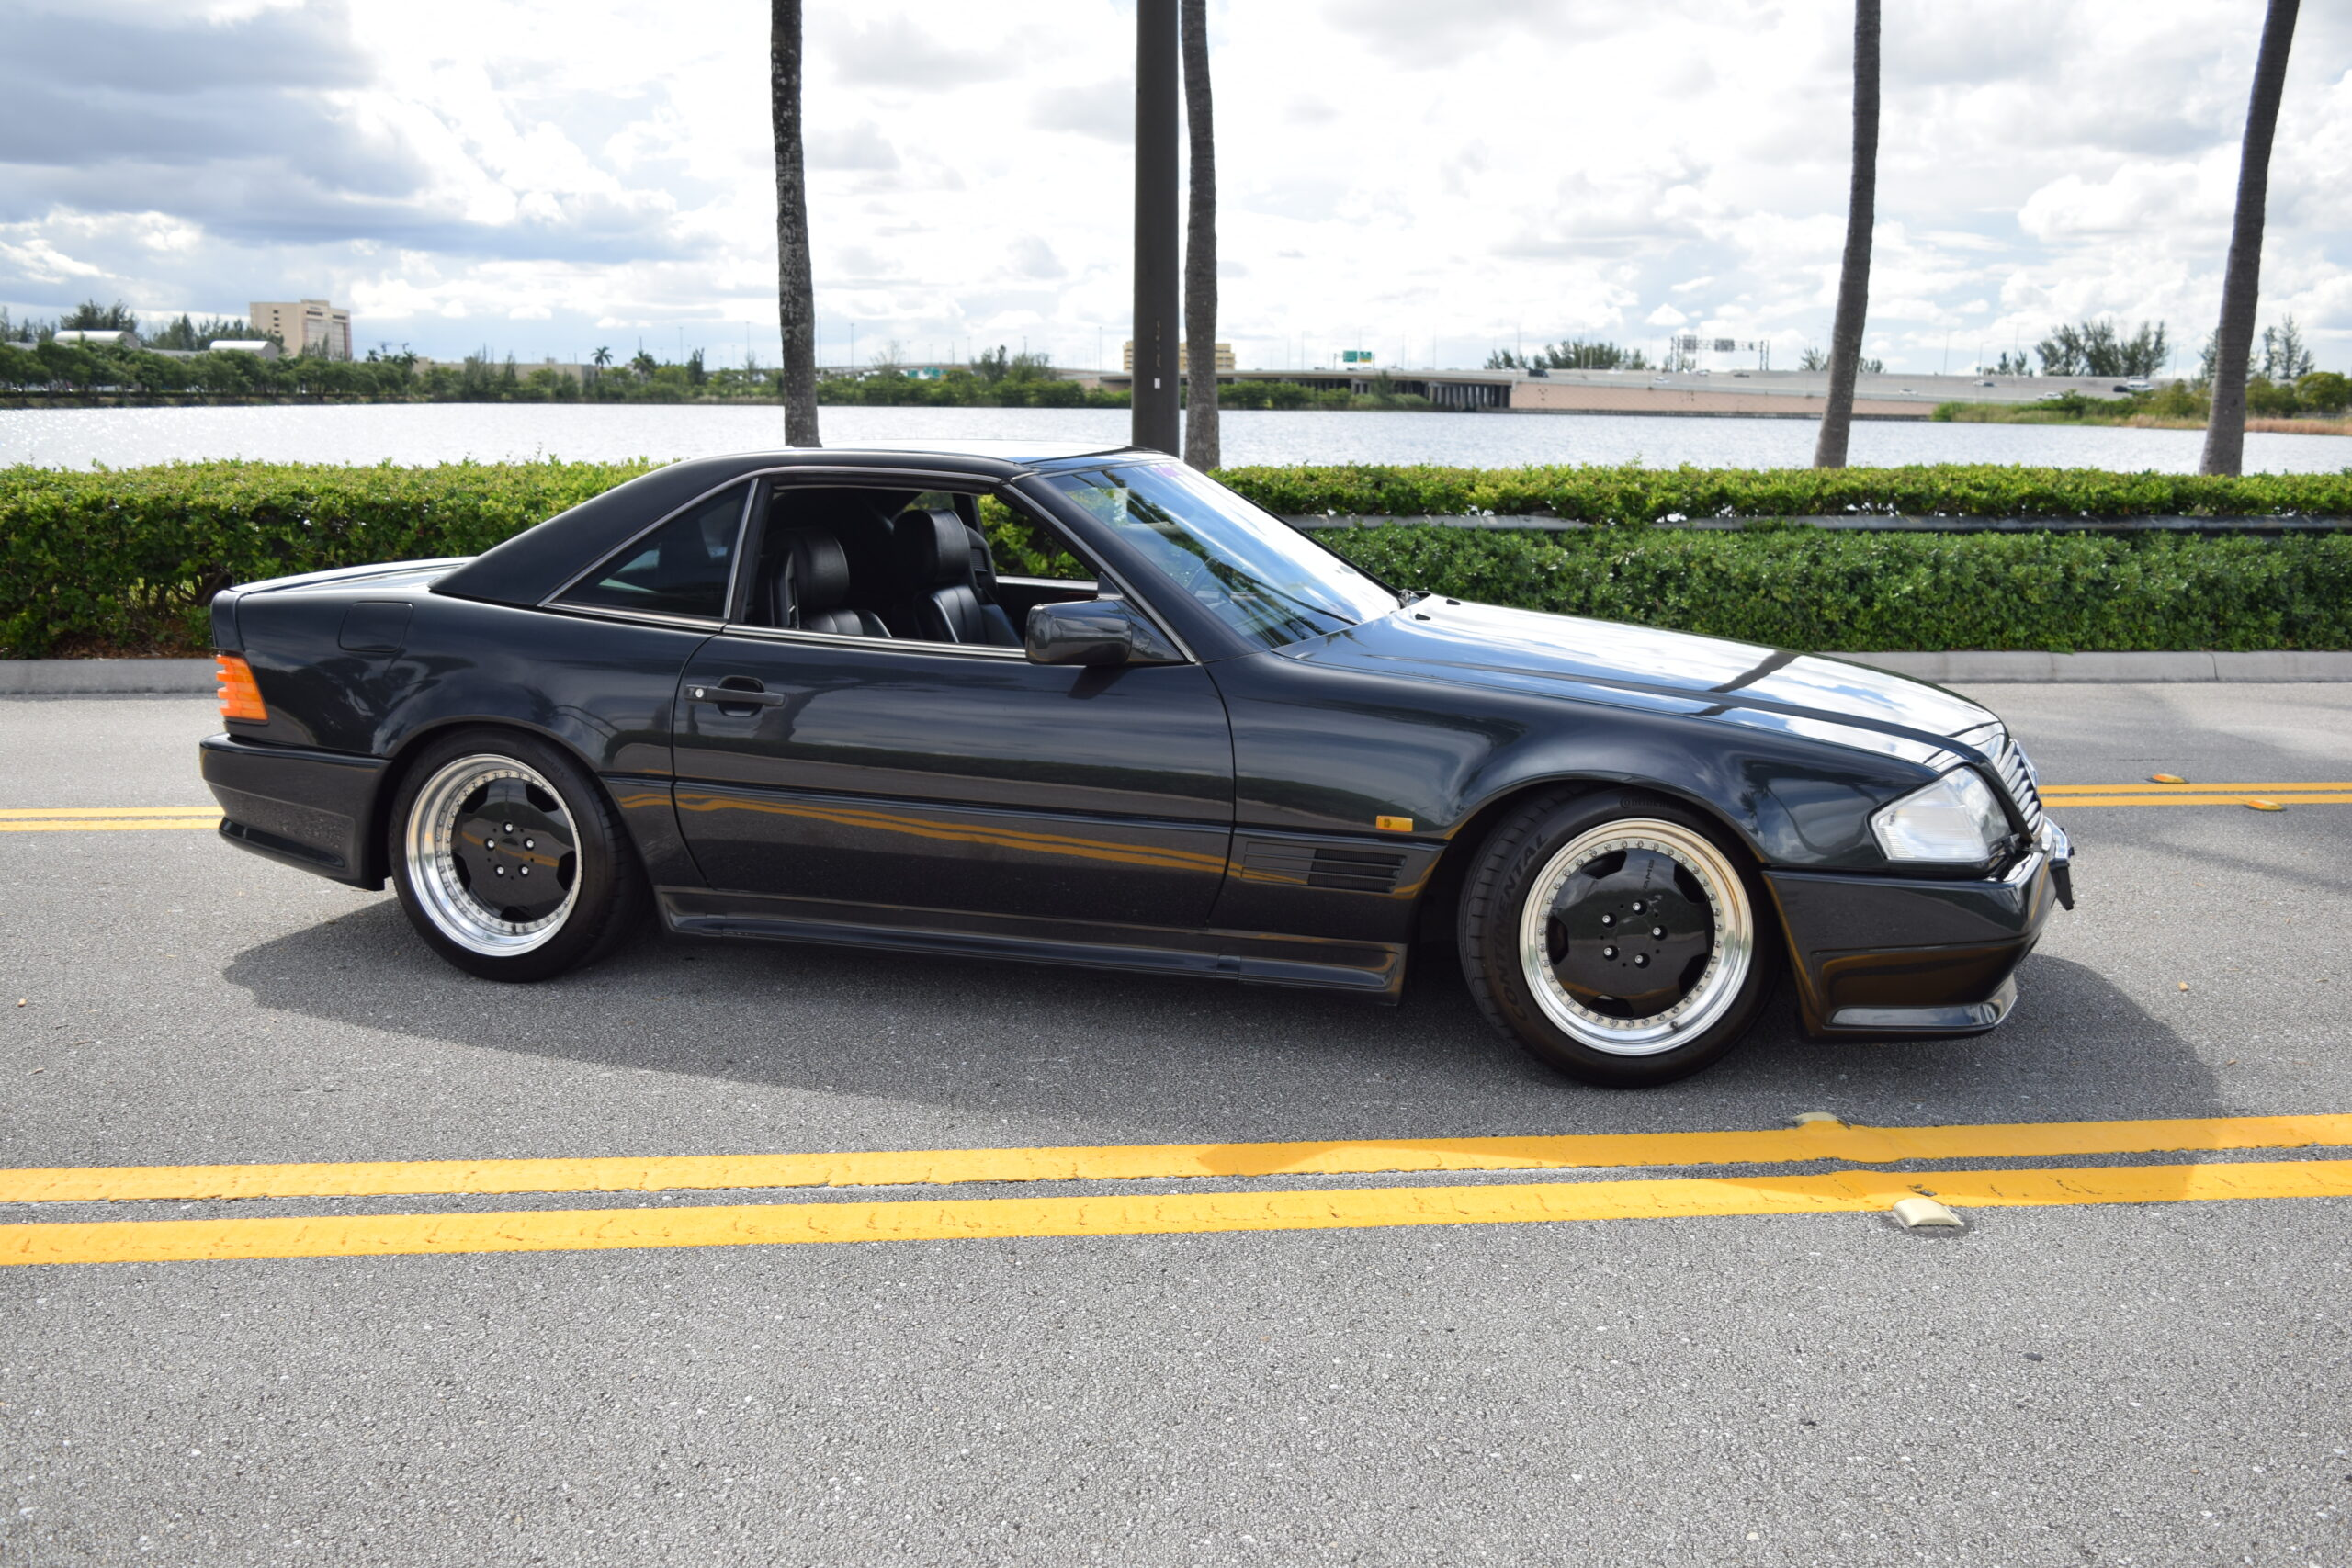 1991 Mercedes 500SL AMG, one of 50 ever made, Pre-merger